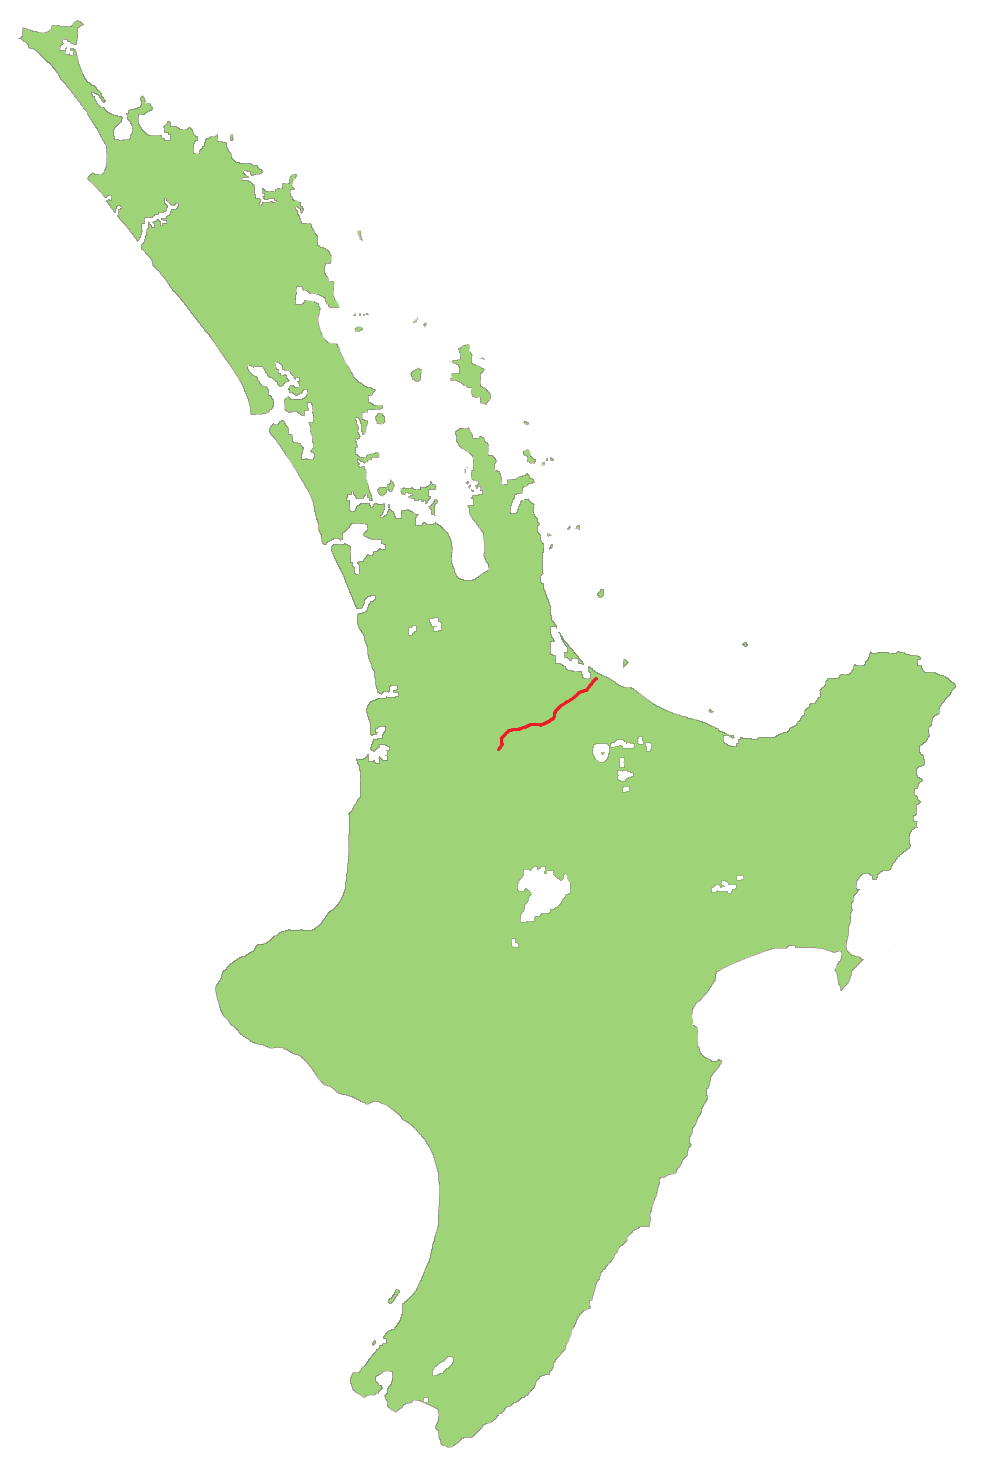 New Zealand State Highway 29 - Wikipedia